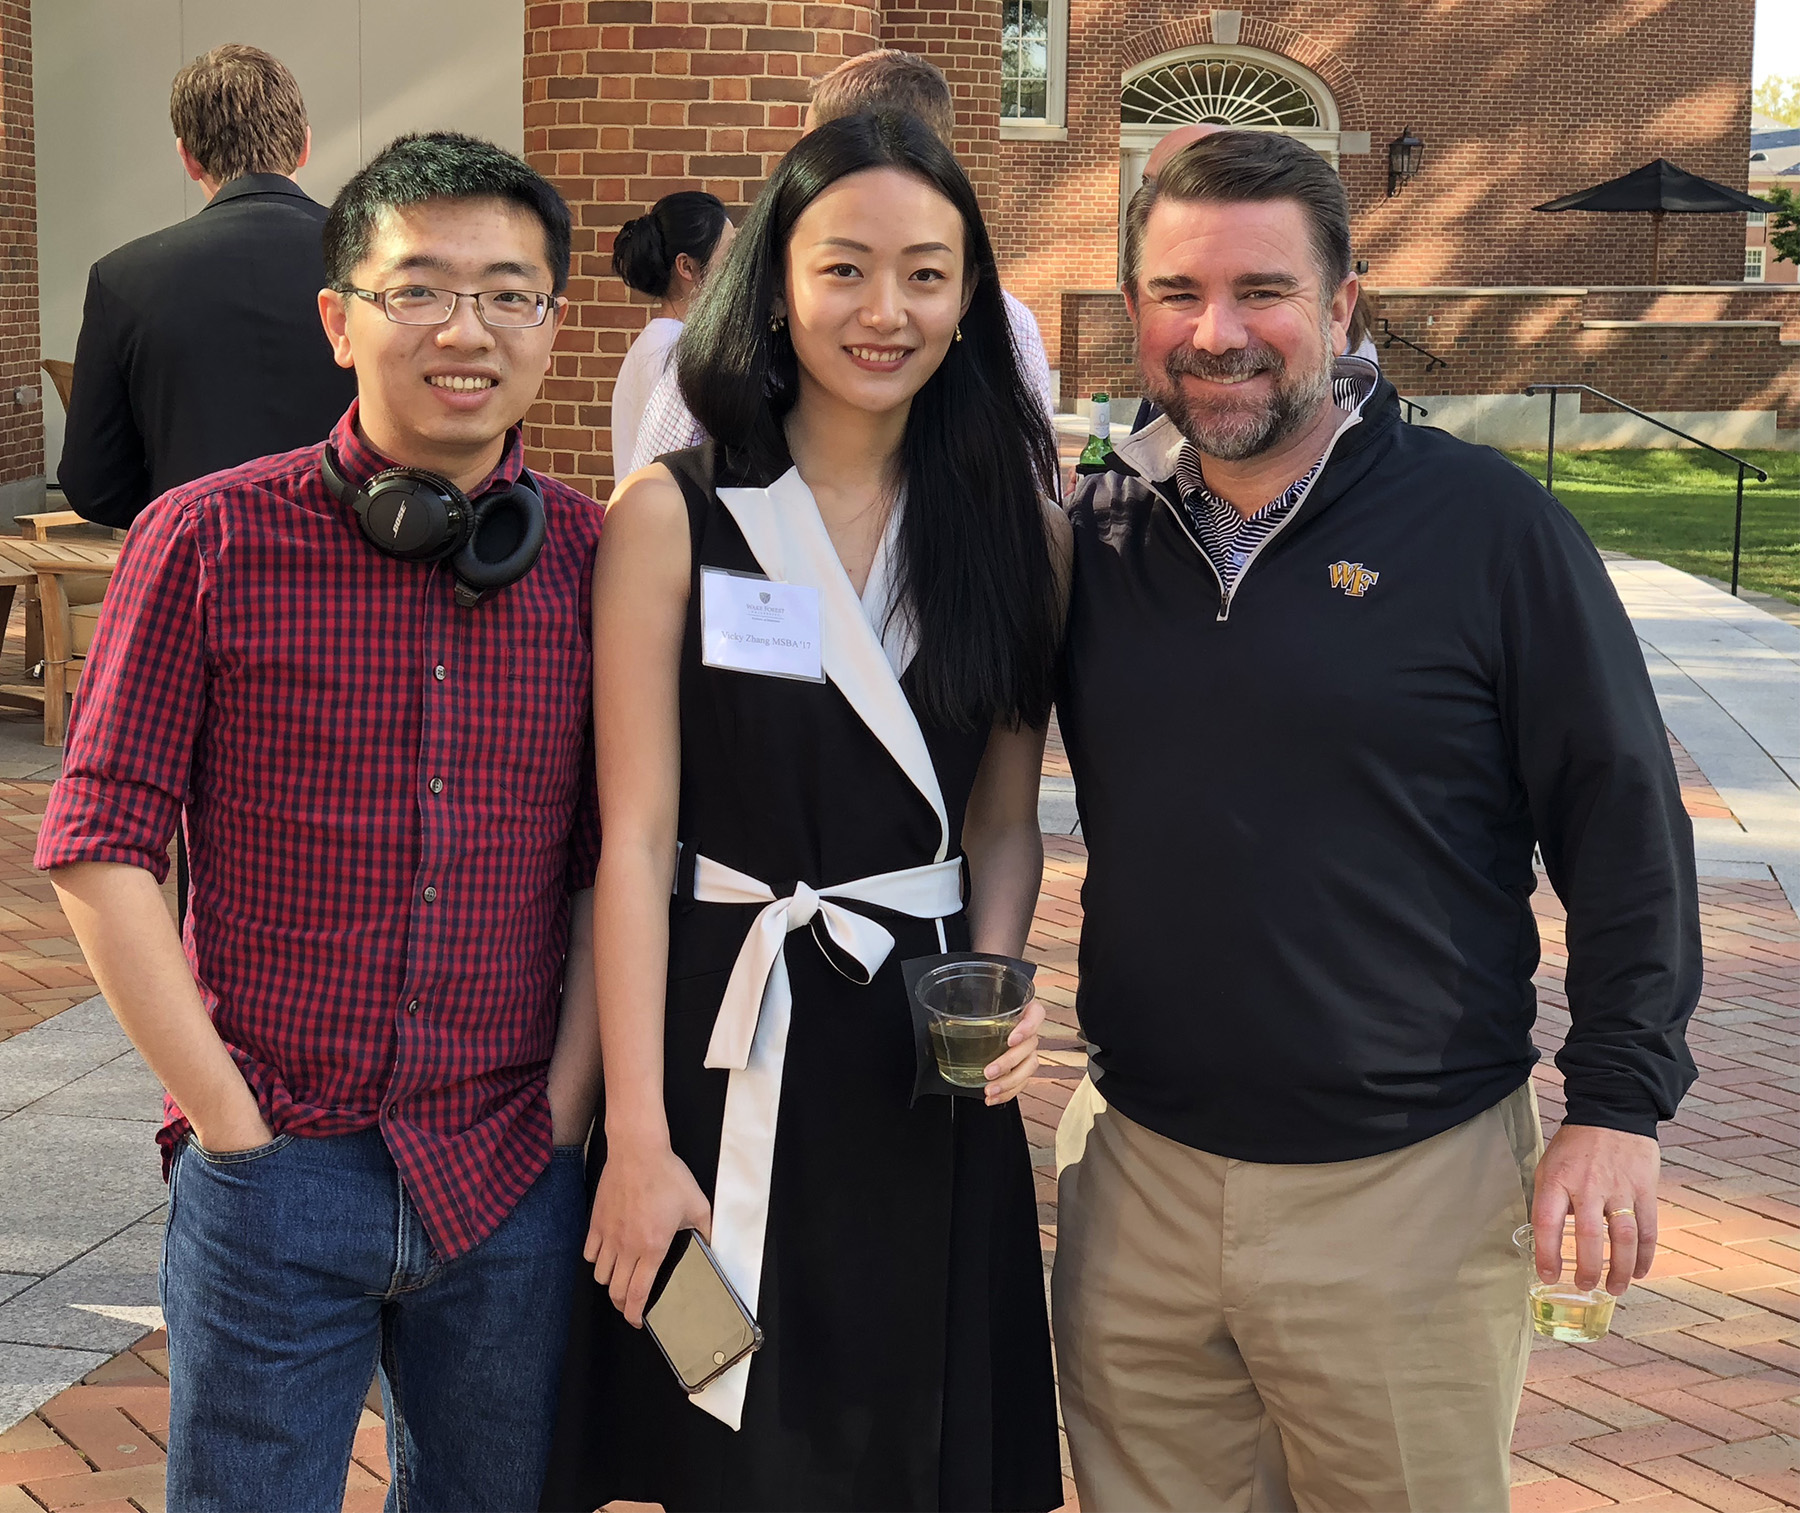 Woody Shi (MSBA '17), Vicky Zhang (MSBA '17), and John White pause their conversation for a quick photo.